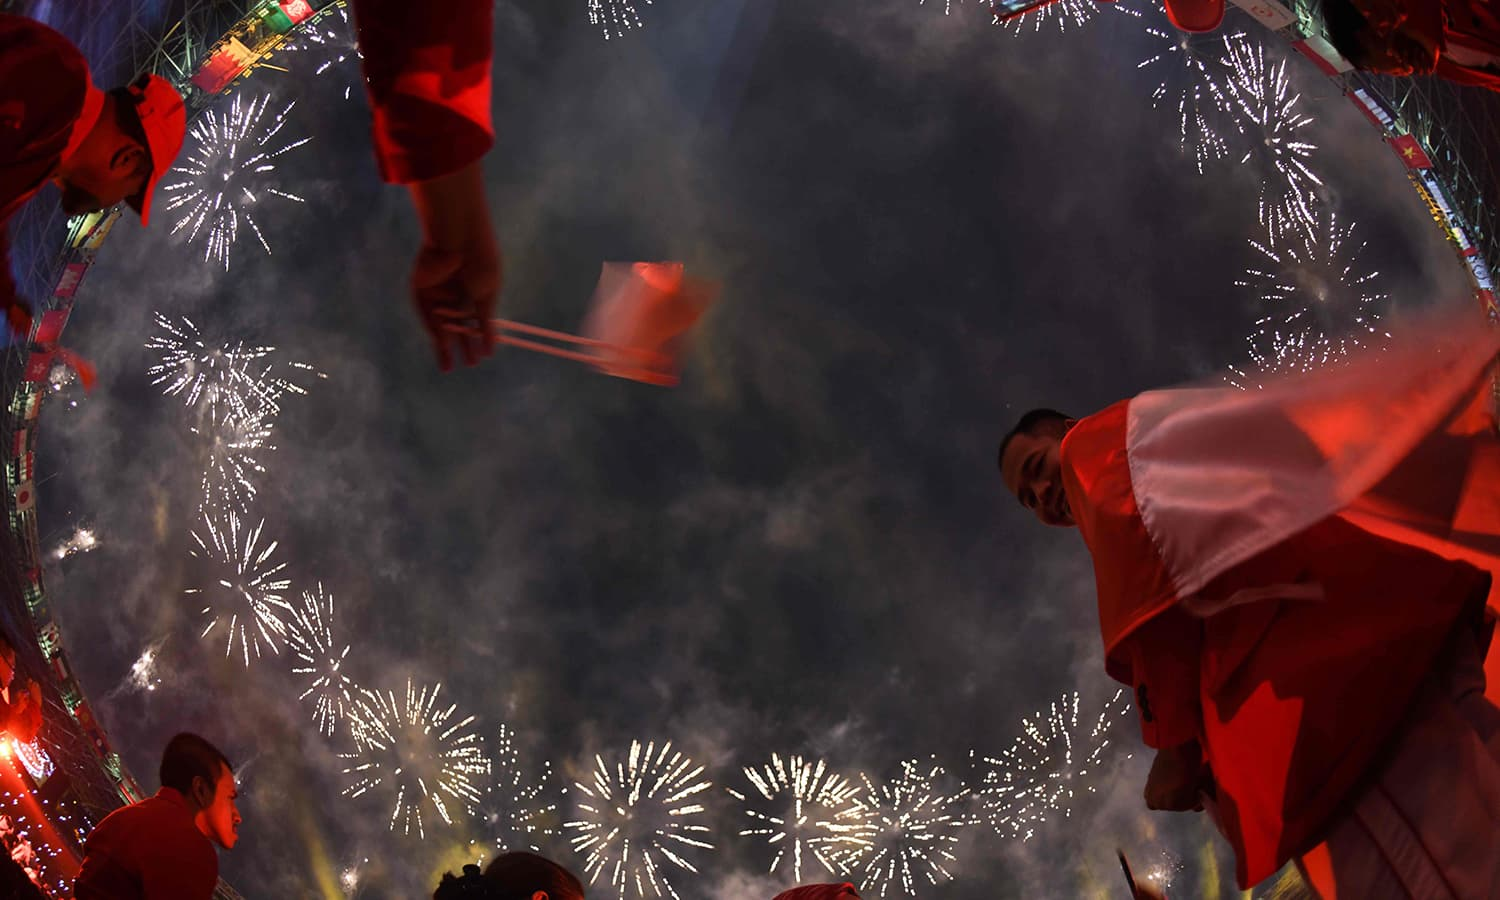 Fireworks explode over the Gelora Bung Karno main stadium during the opening ceremony of the 2018 Asian Games in Jakarta. —AFP